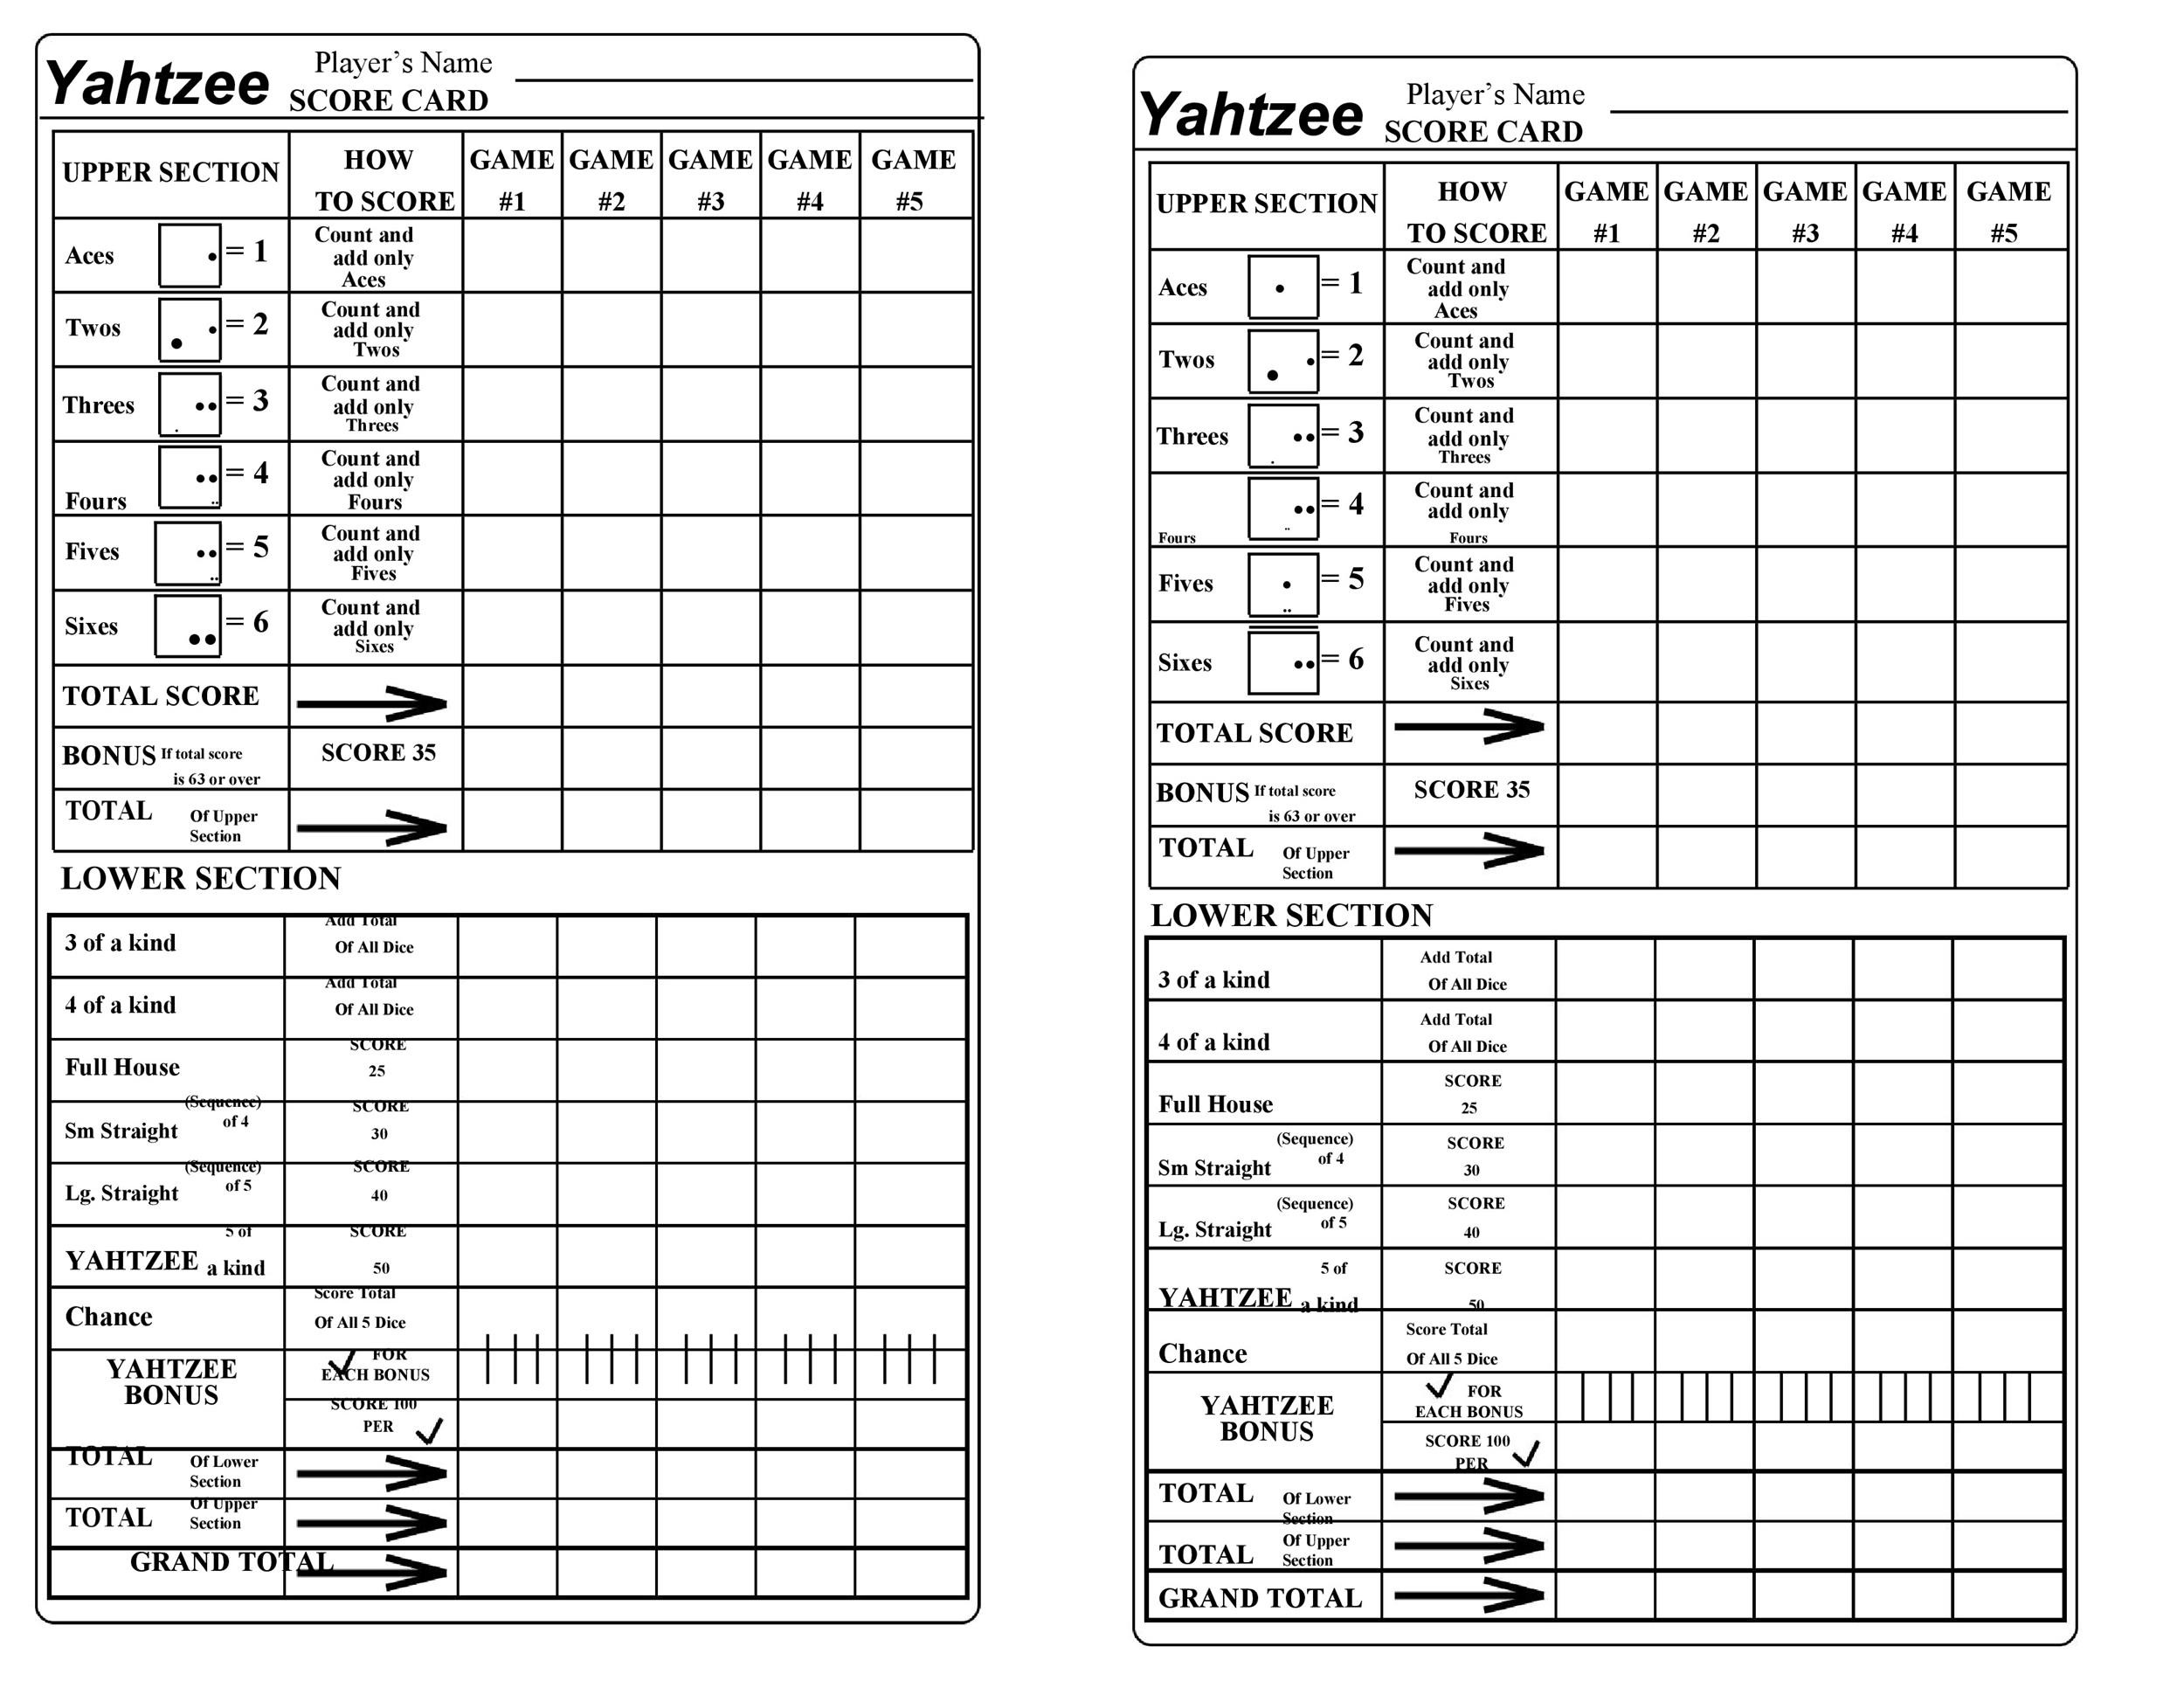 photo about Yahtzee Score Cards Printable named 28 Printable Yahtzee Ranking Sheets Playing cards (101% Absolutely free) ᐅ